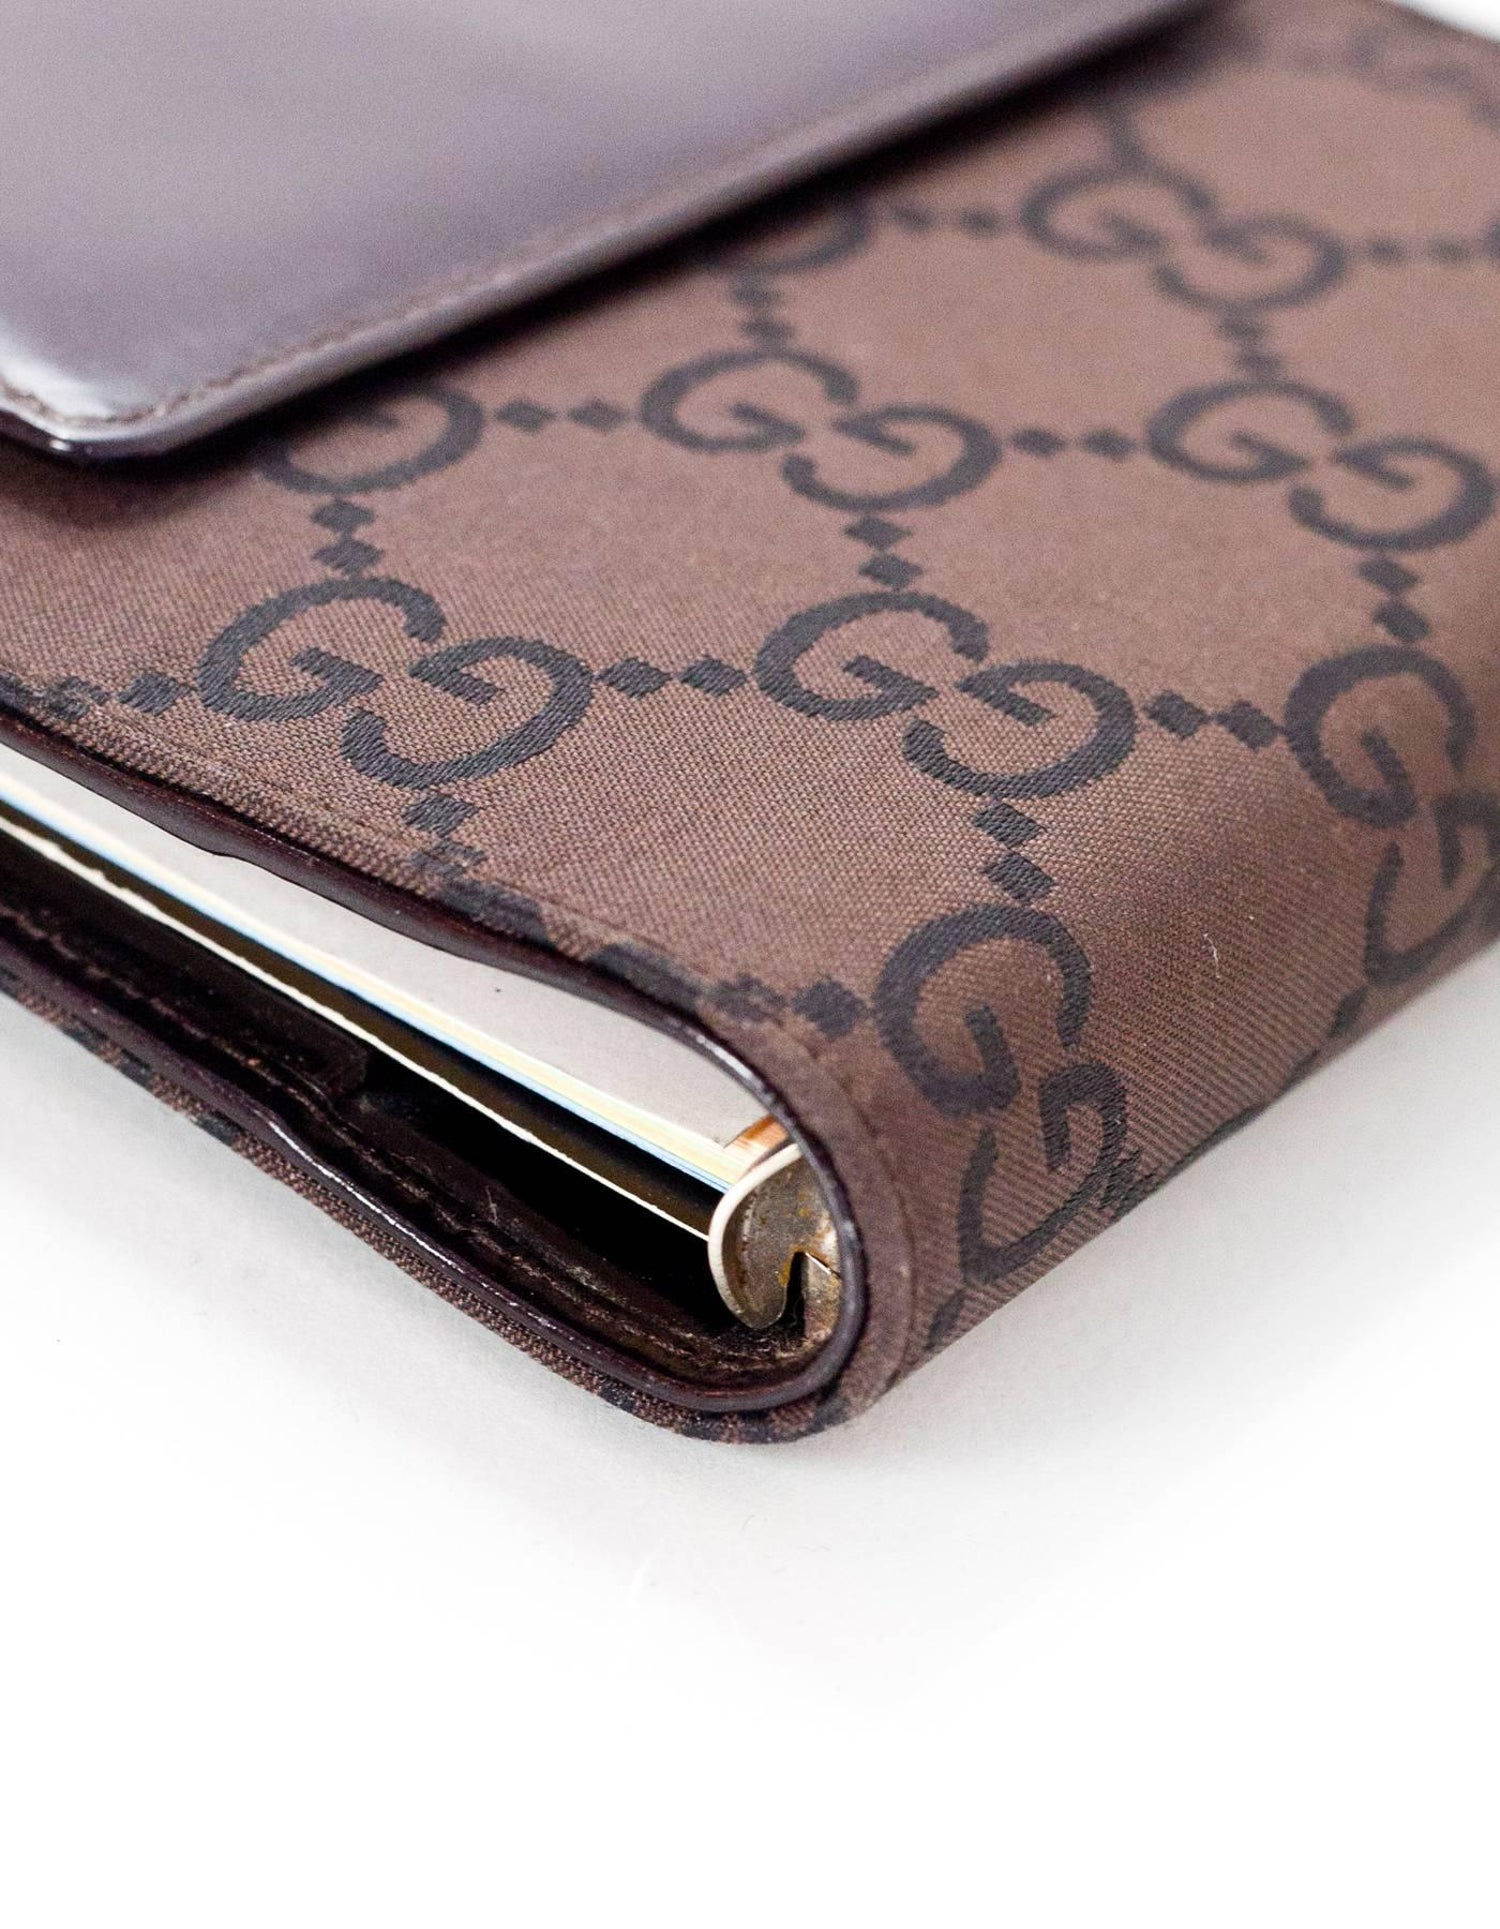 a7e05b15ebcbb1 Gucci Brown Monogram Agenda Notebook Wallet For Sale at 1stdibs